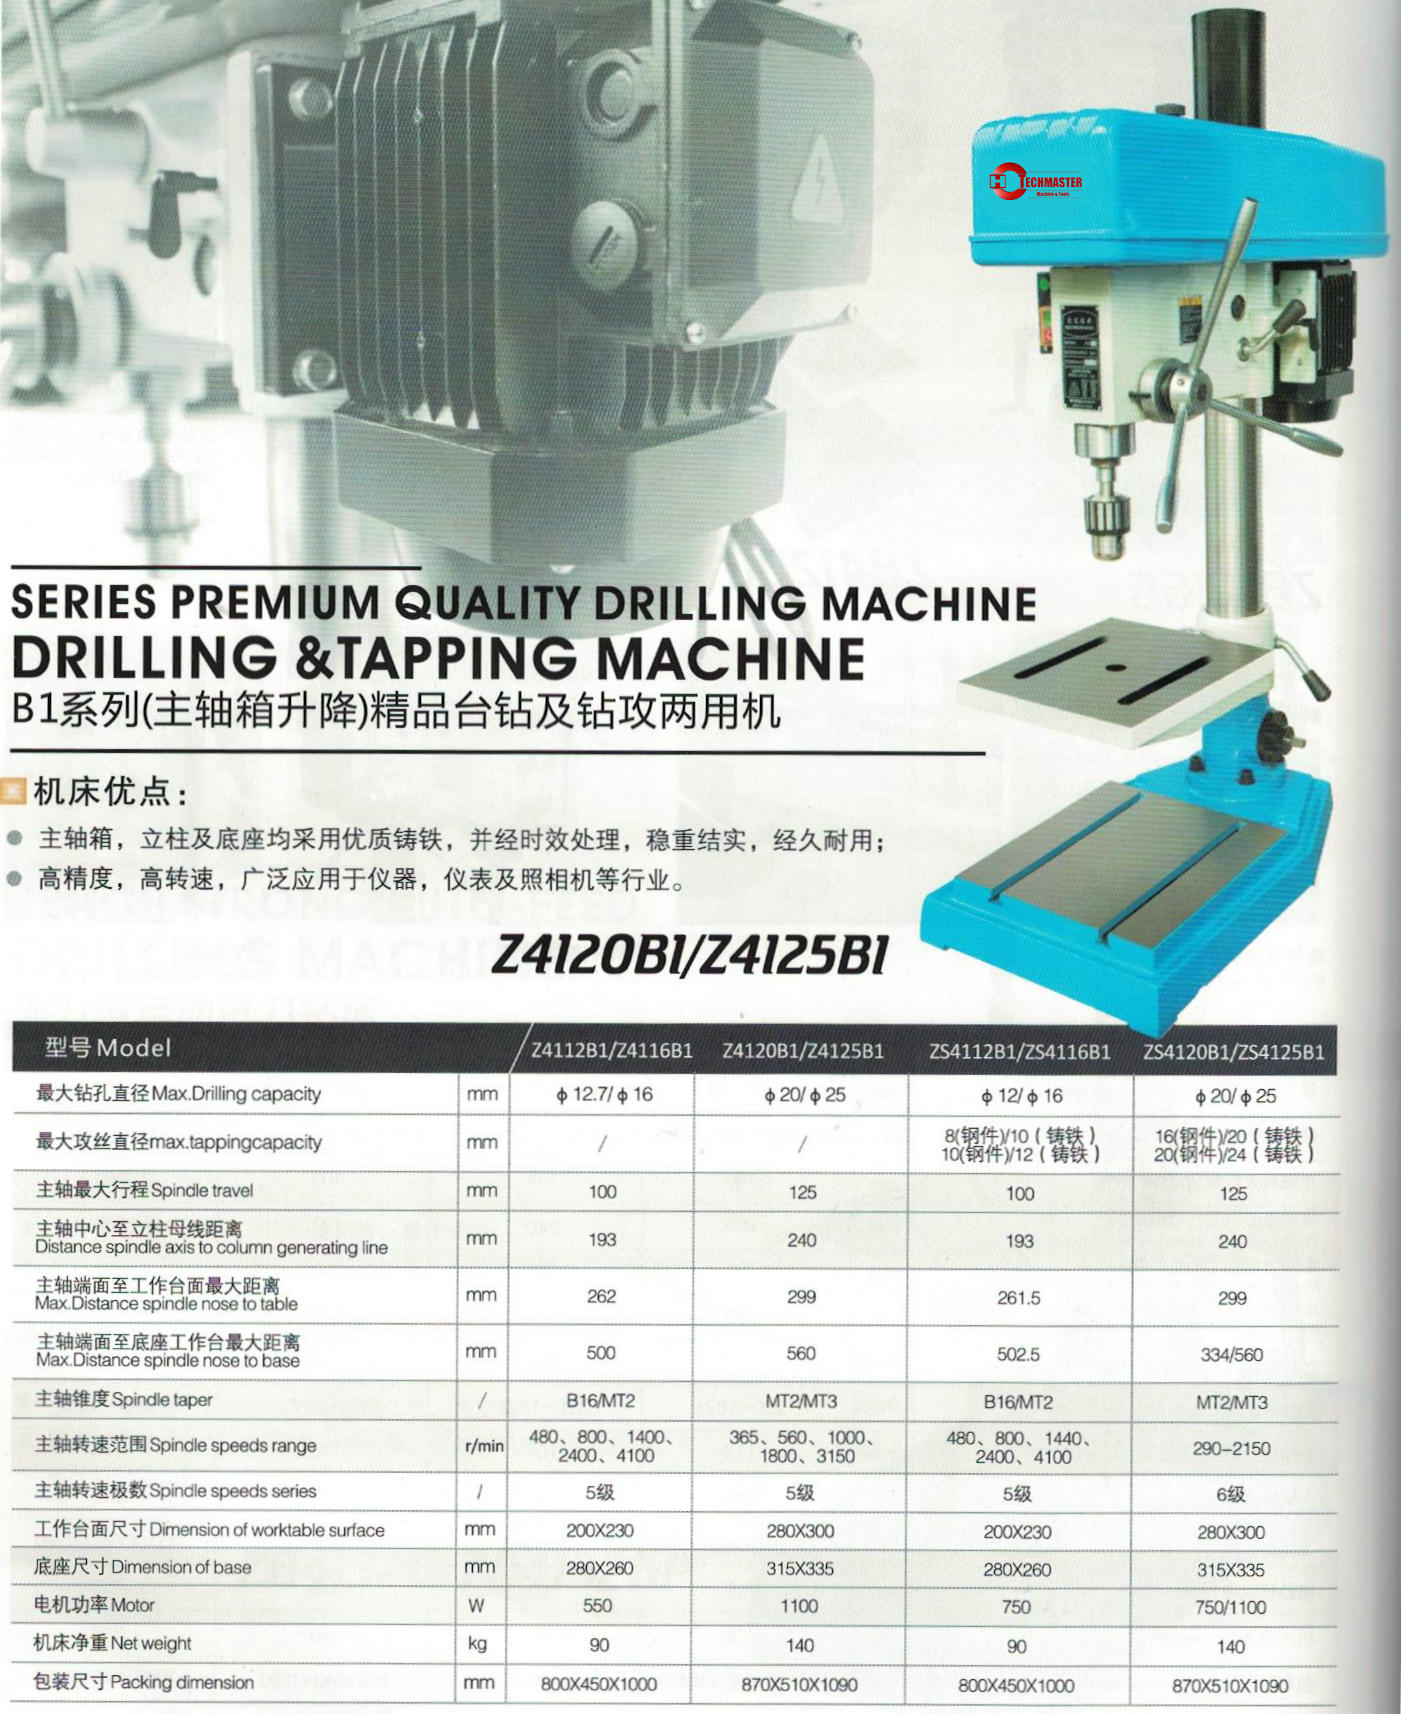 B1 SERIES PREMIUM QUALITY DRILLING MACHINE Z4125B1